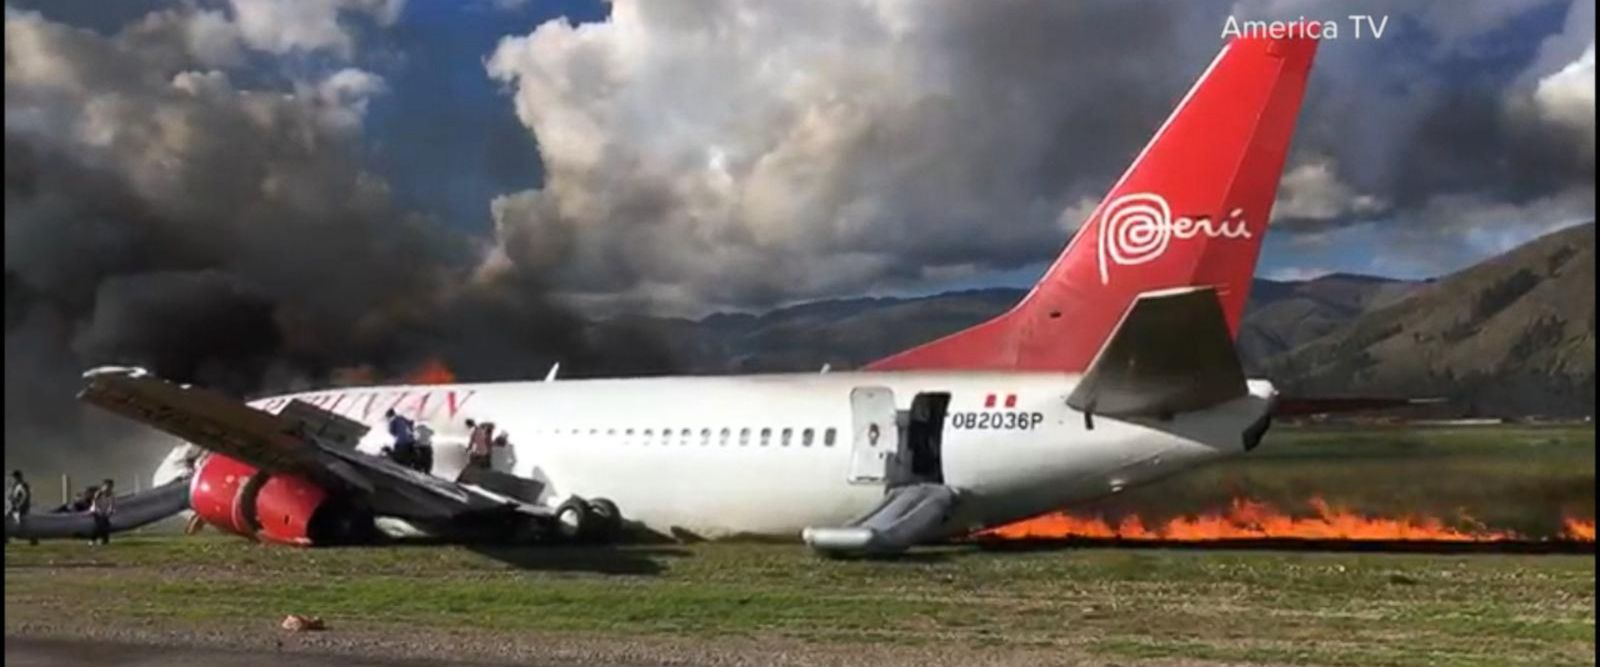 VIDEO: Burning passenger jet's emergency landing in Peru